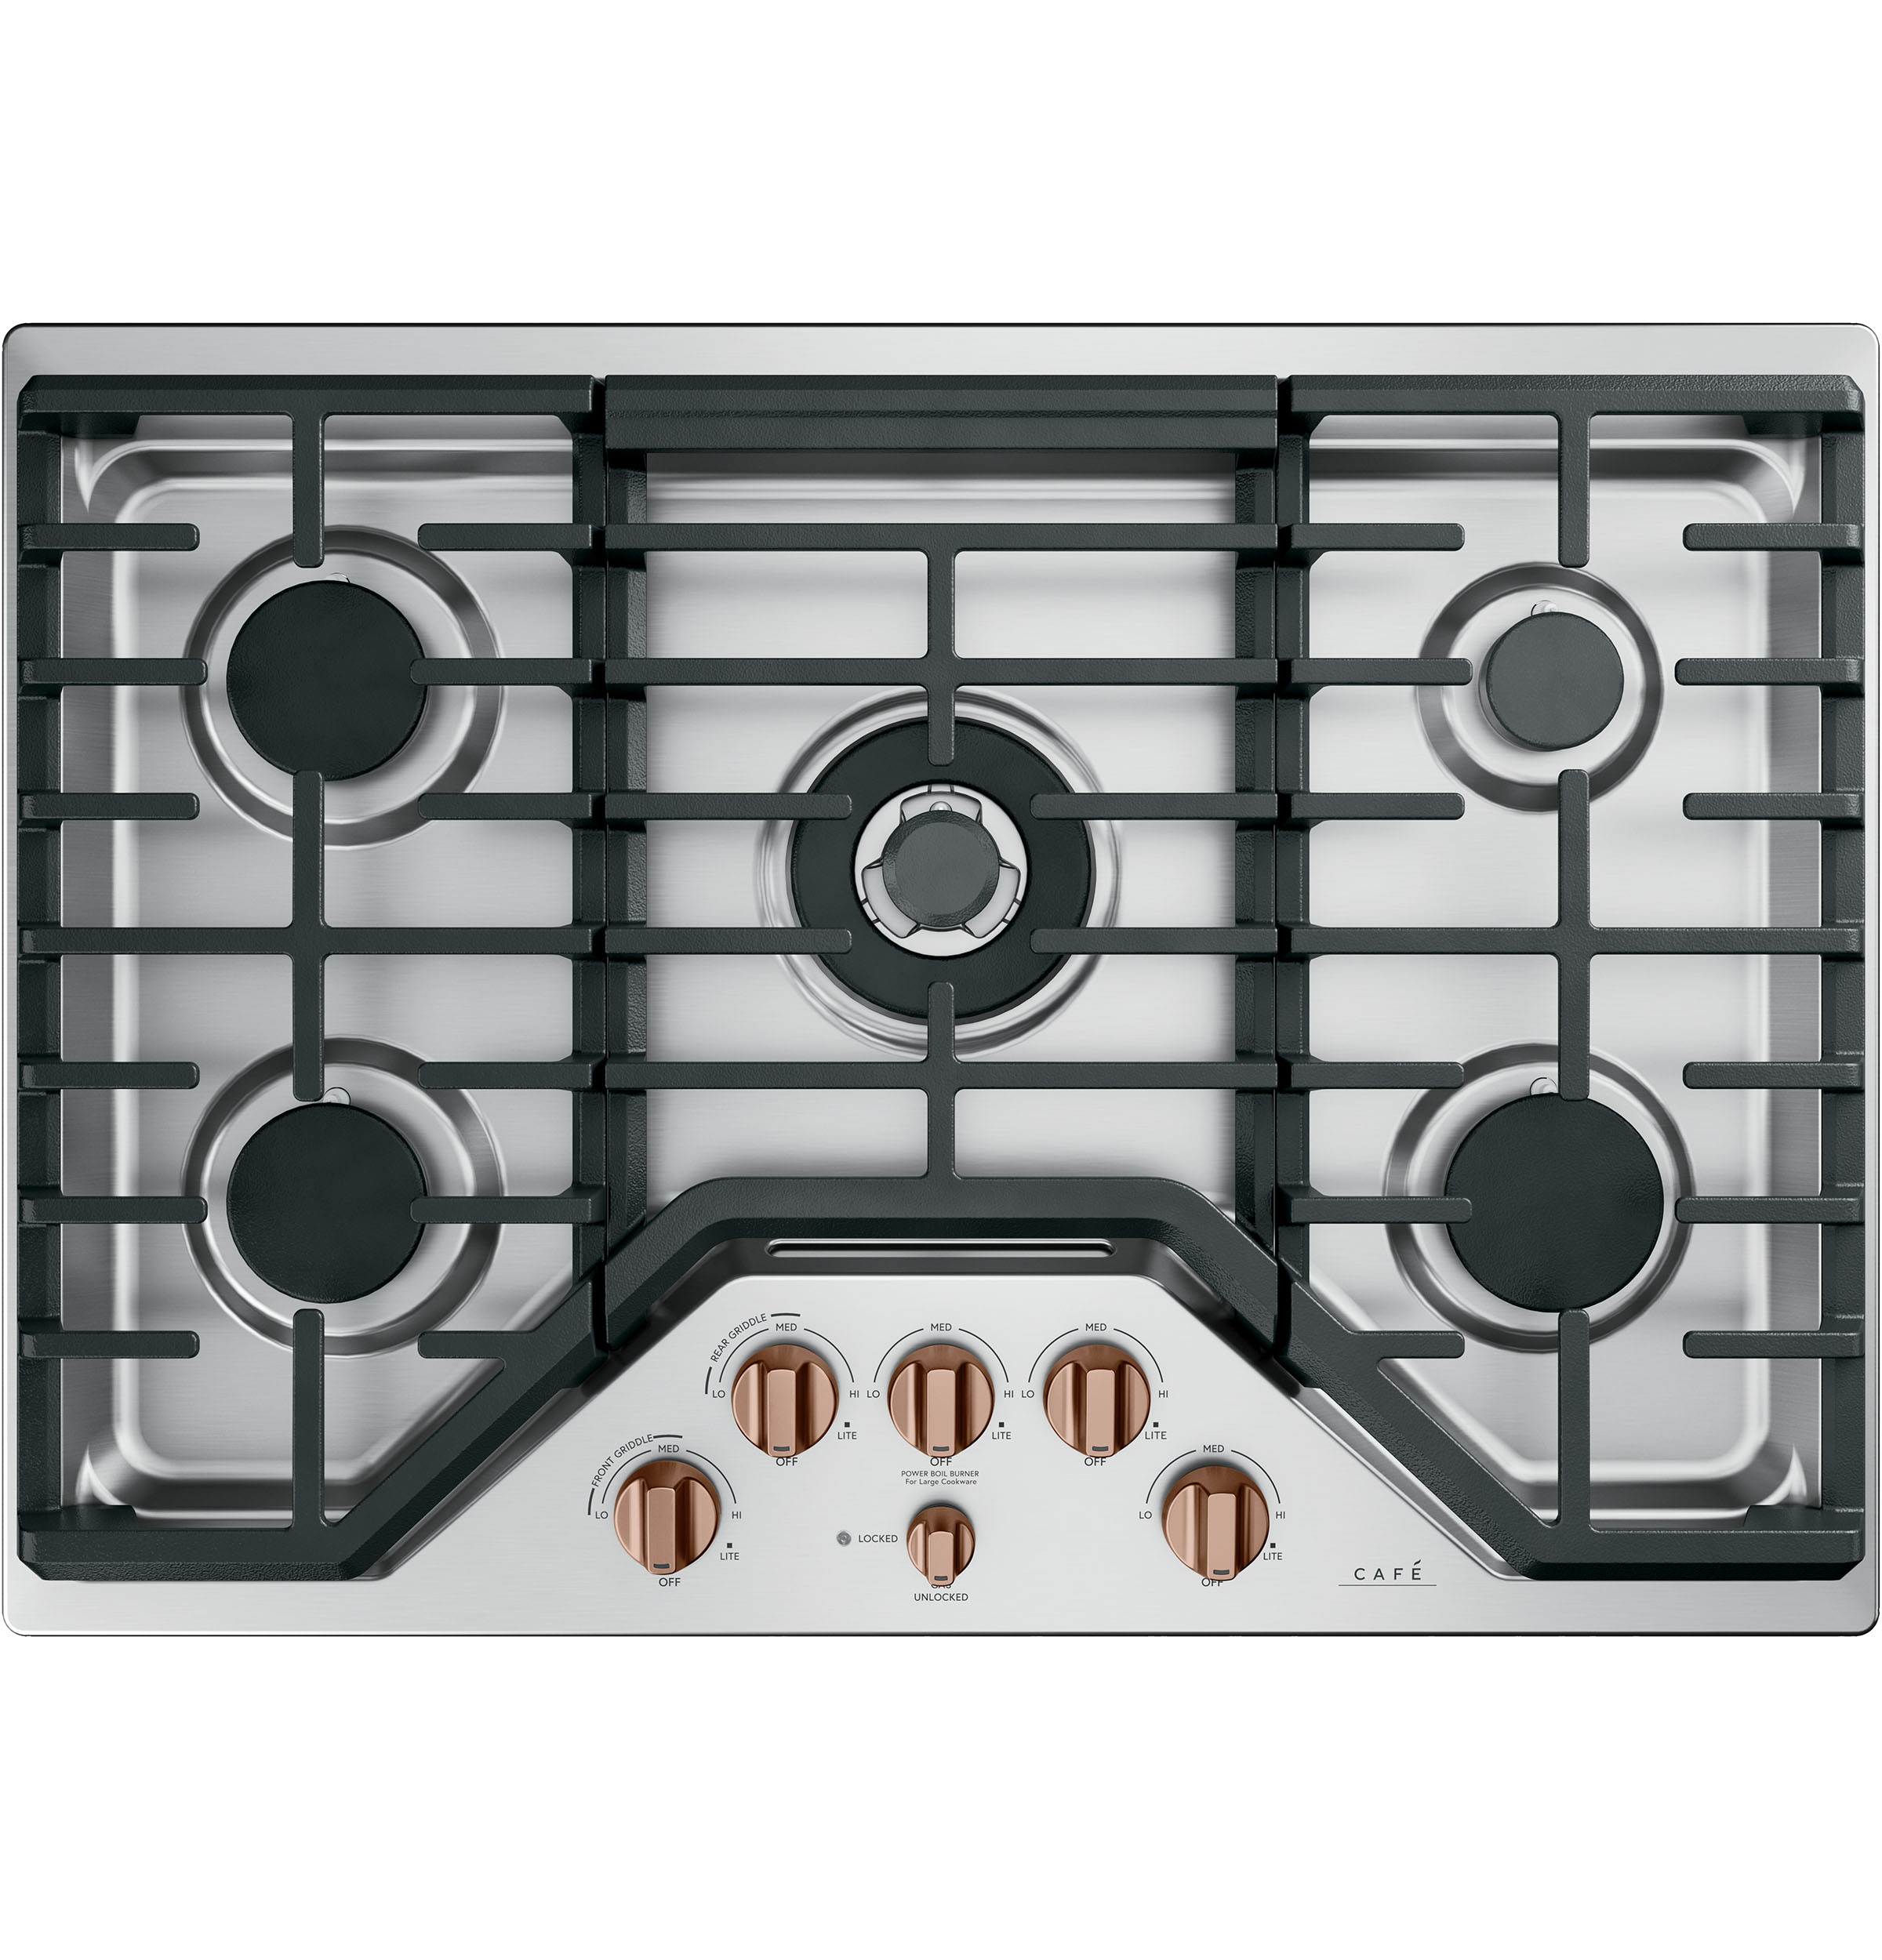 Cafe 5 Gas Cooktop Knobs - Brushed Copper